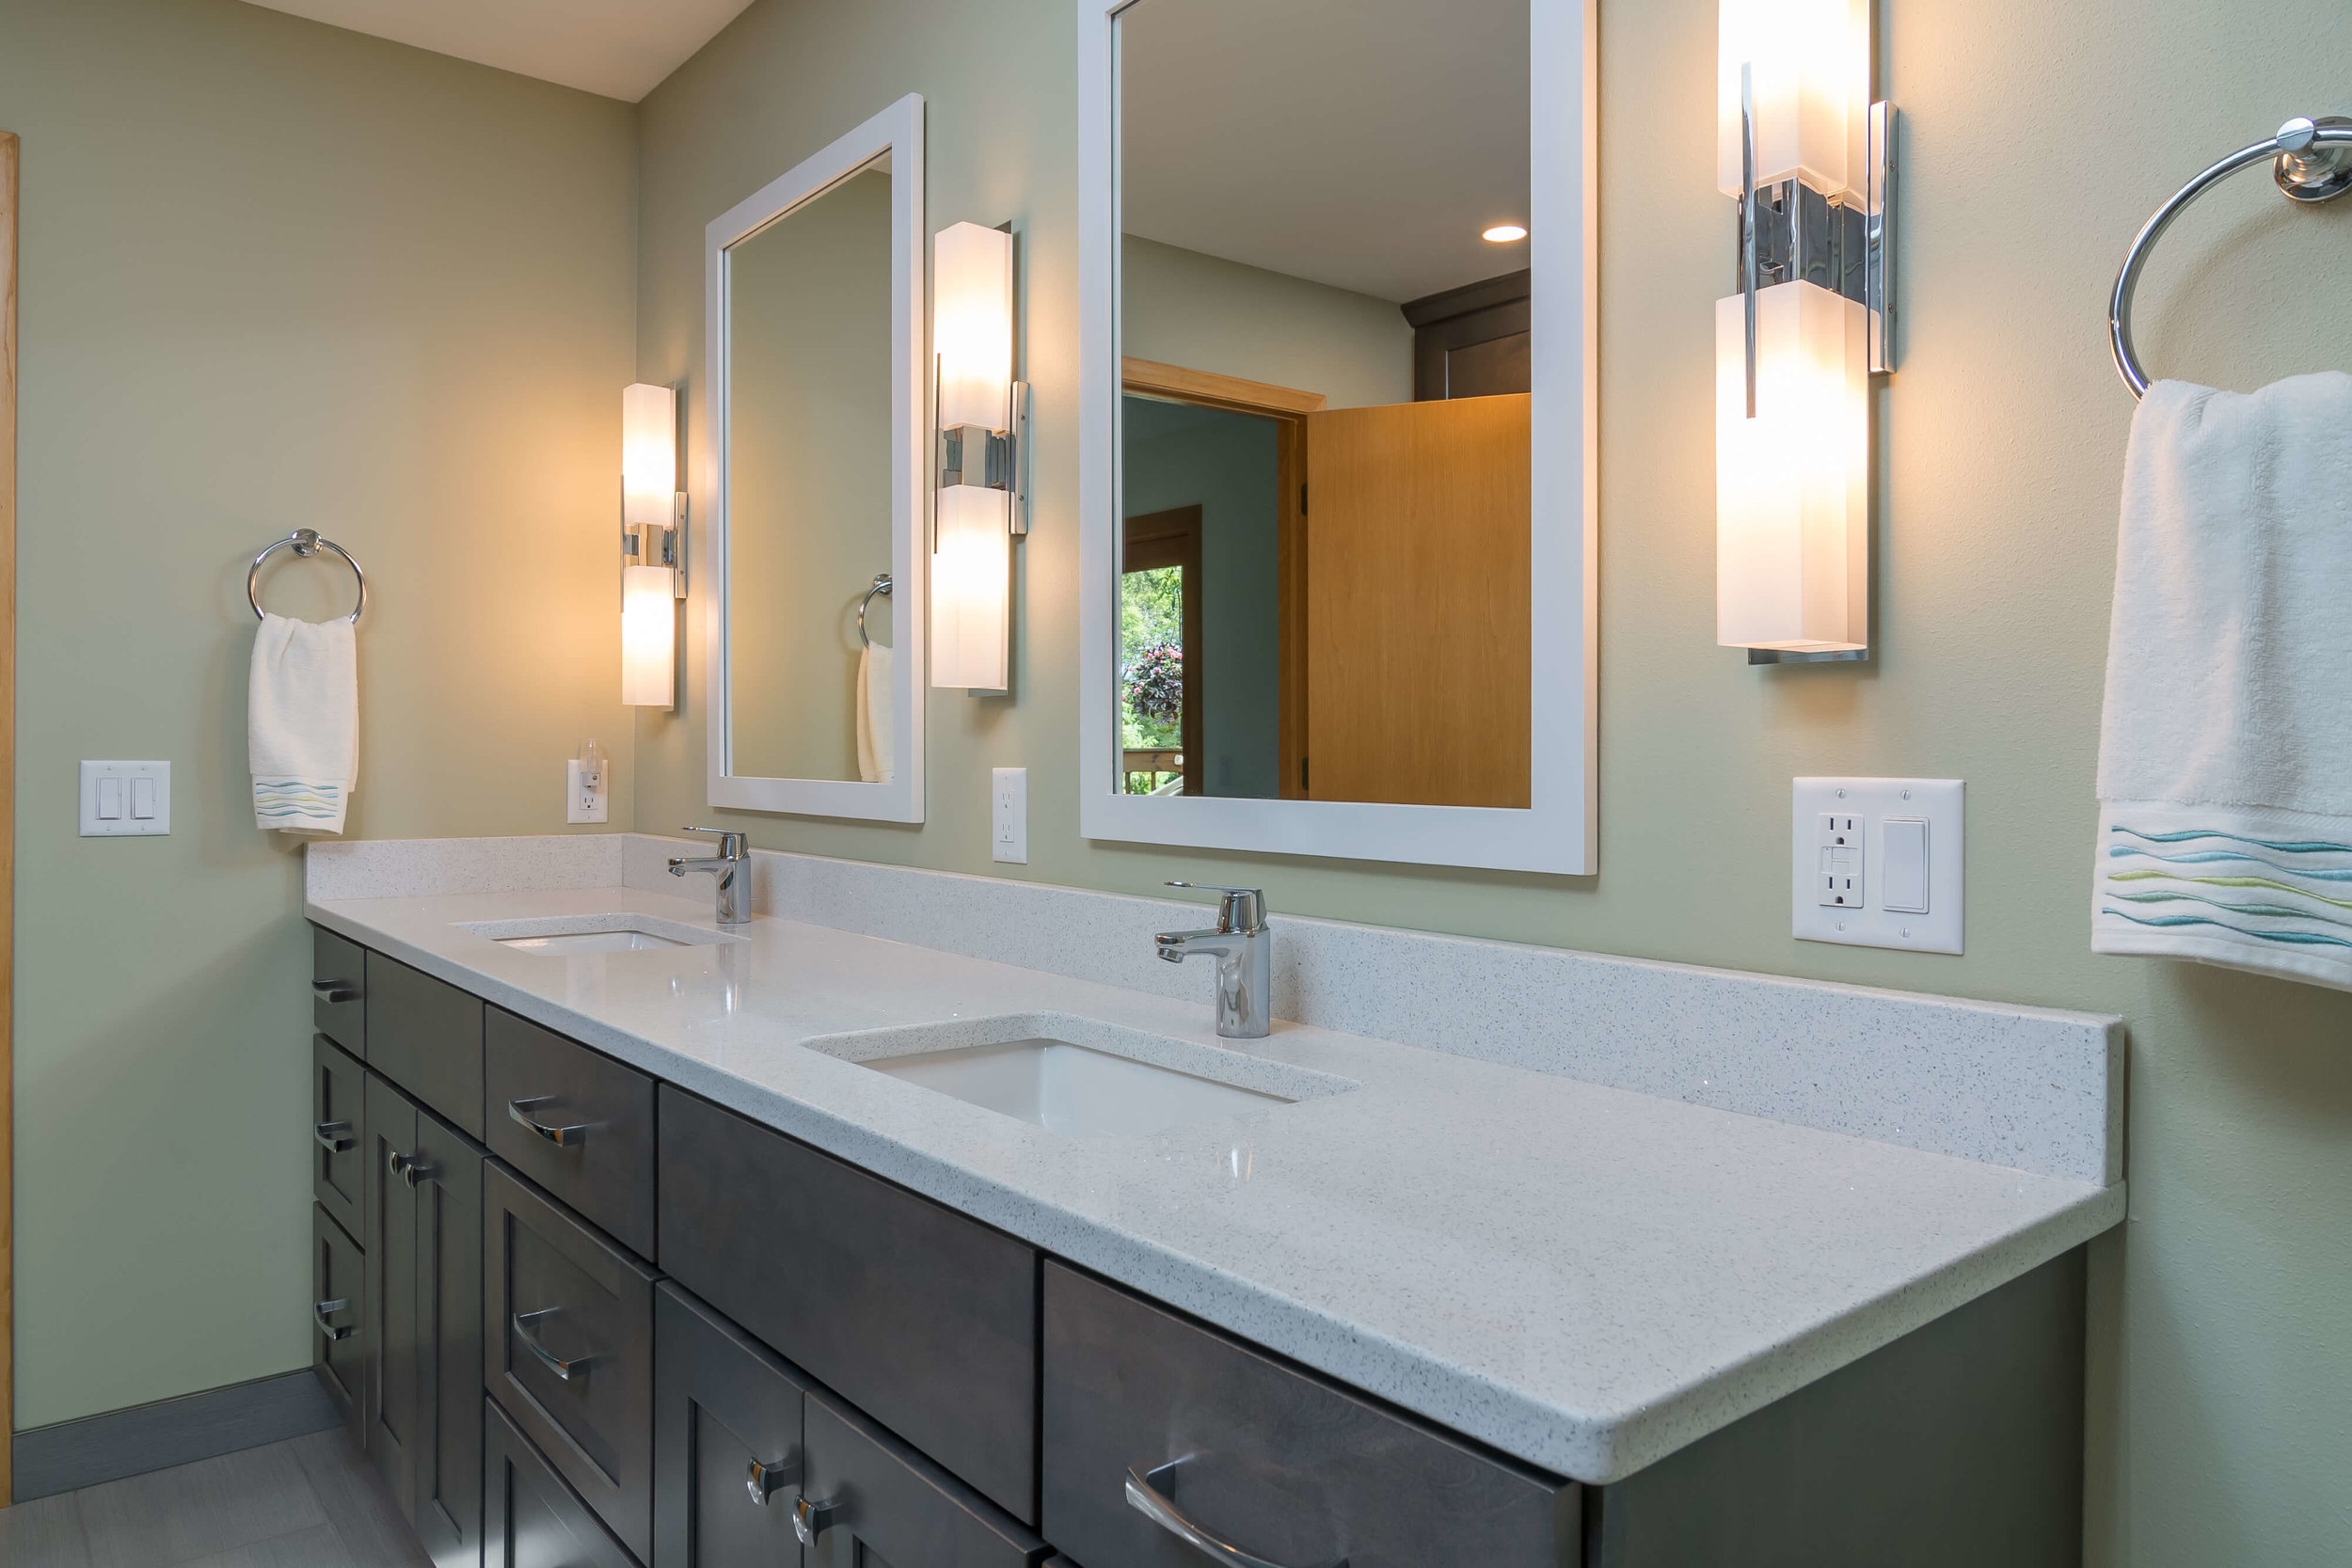 bathroom-master-suite-double-sink-remodel-Madison-Wisconsin-6.jpg